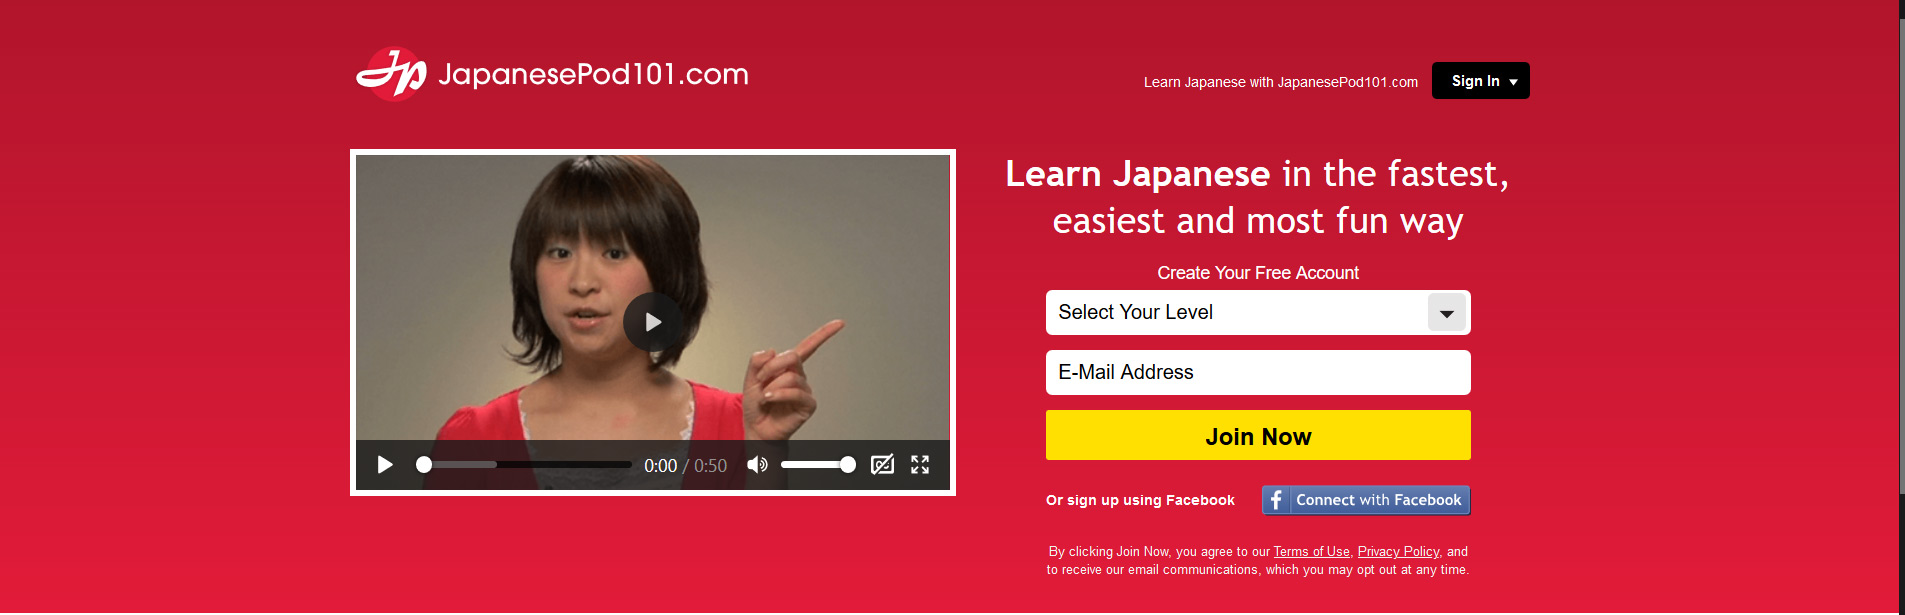 Learn Japanese Language Amazing Online Program Learn Language 101